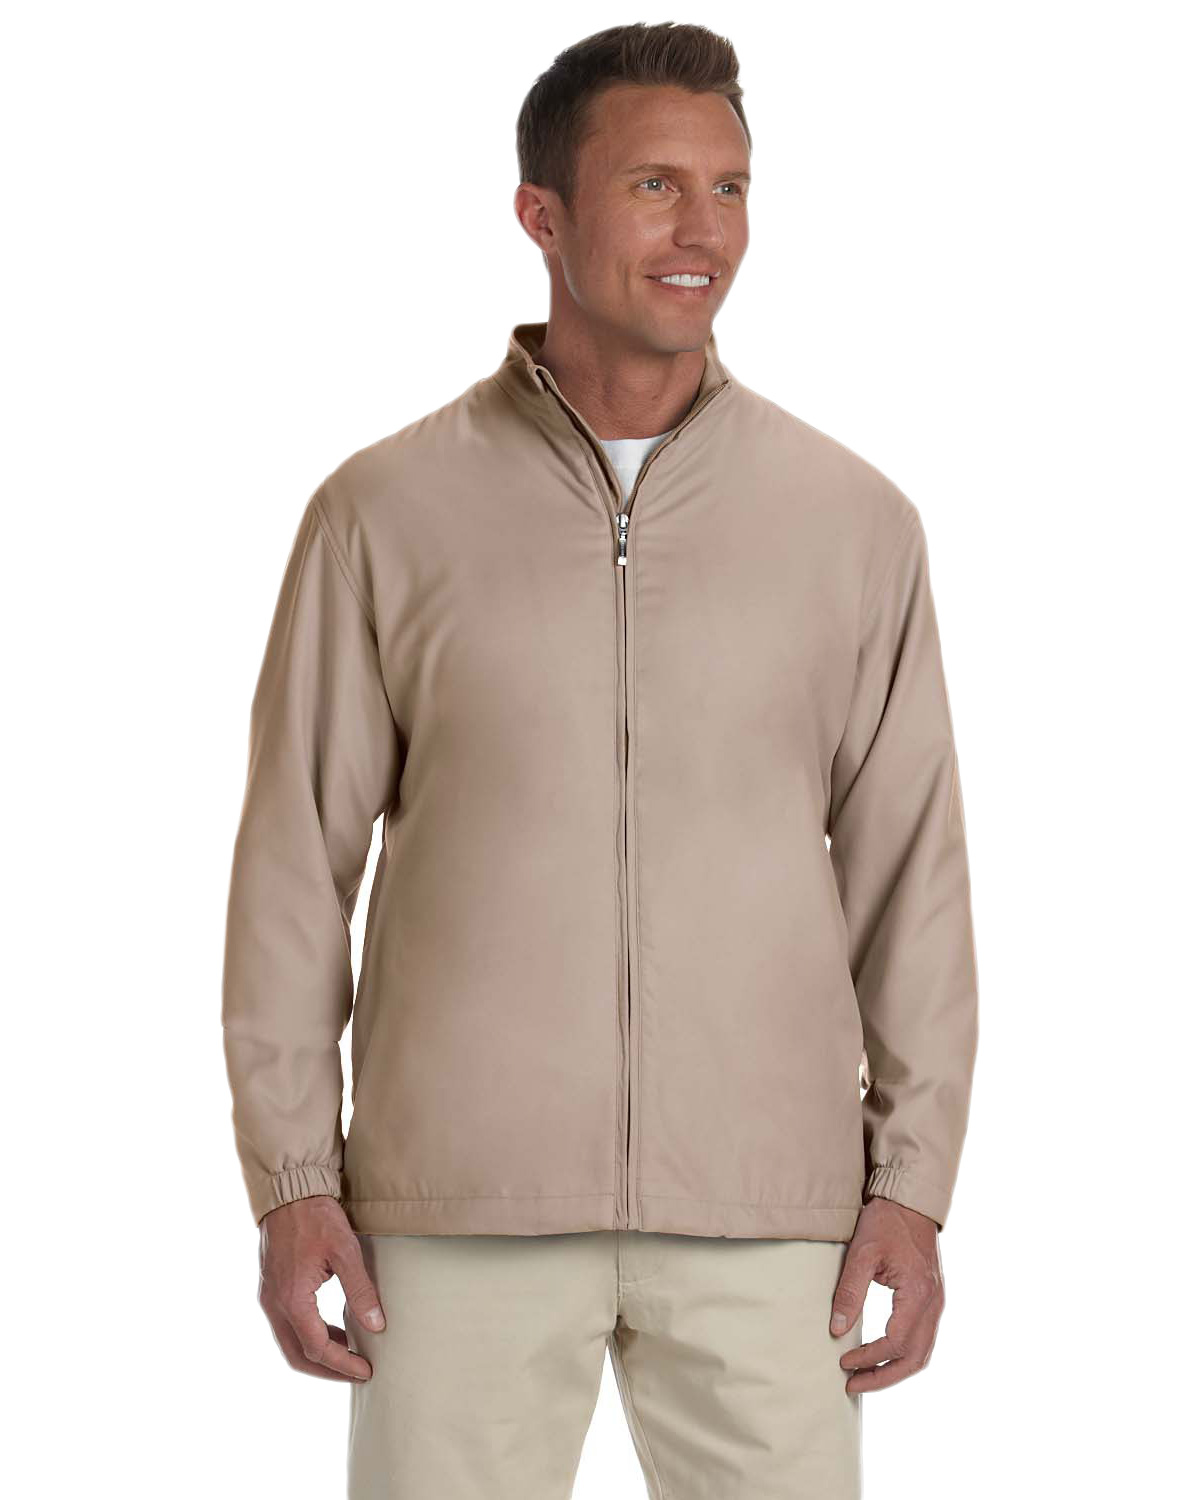 Ashworth 5378 Men Full-Zip Lined Wind Jacket Stone at GotApparel